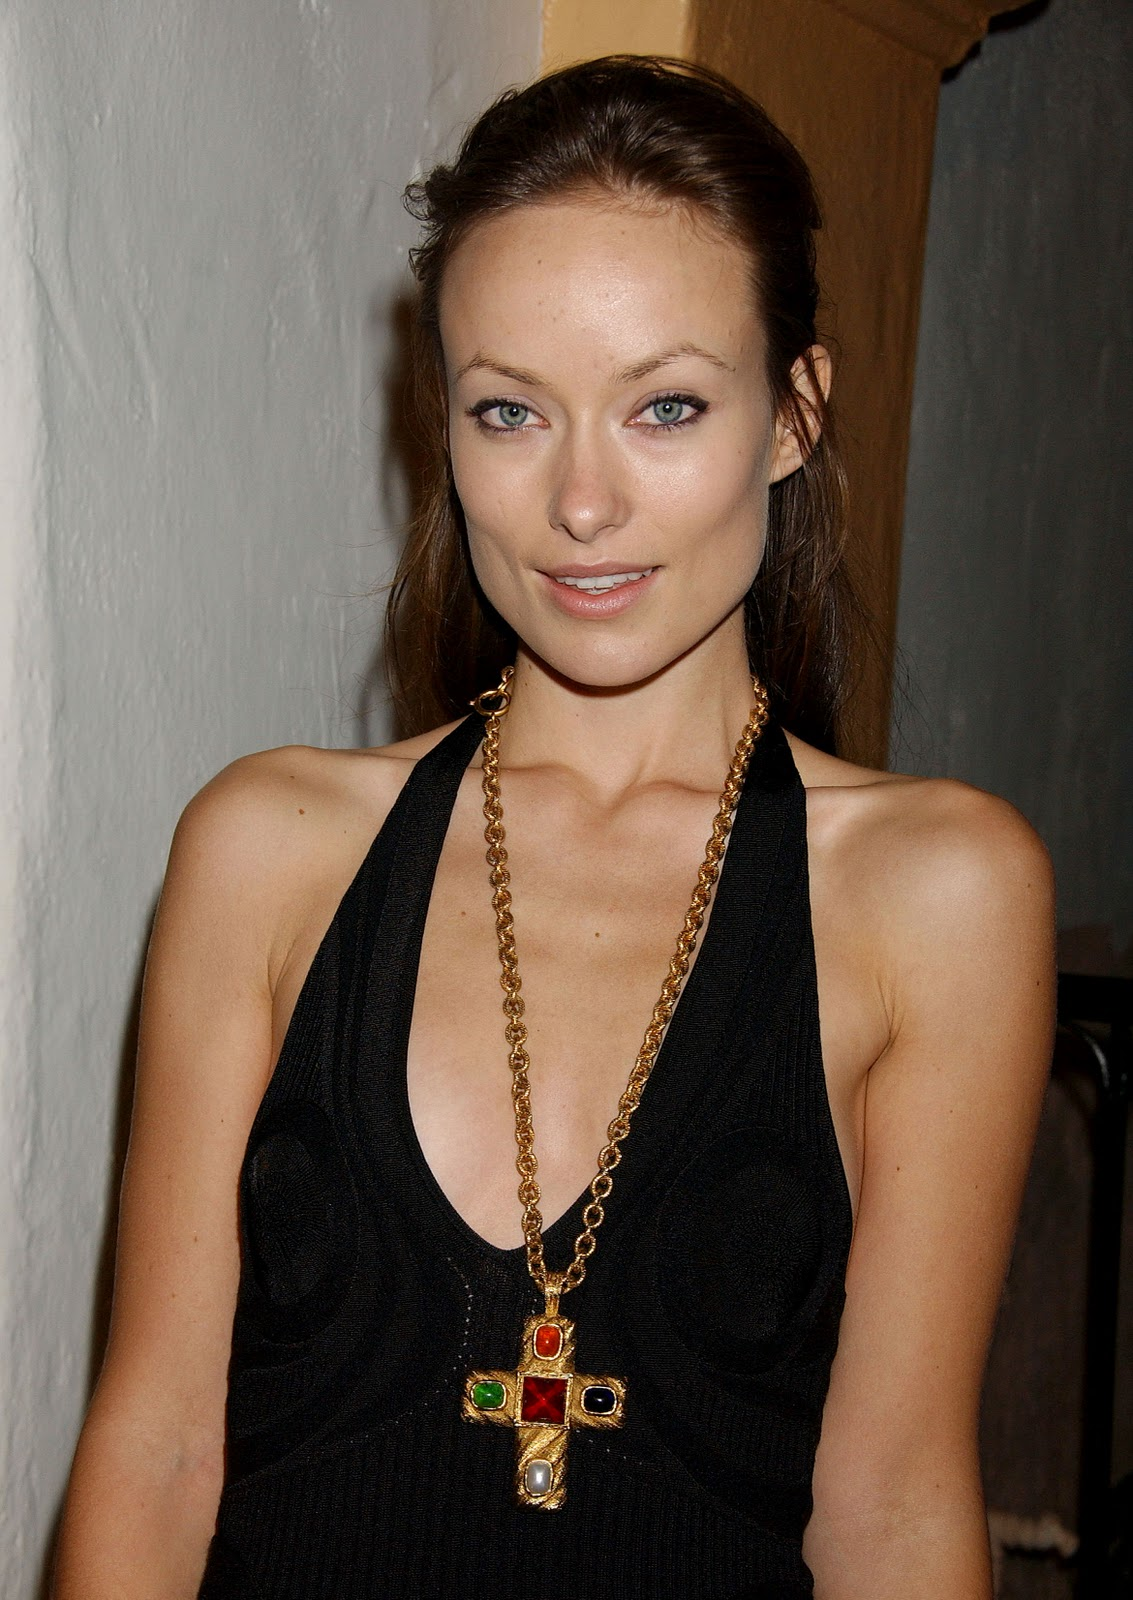 Olivia Wilde Special Pictures: Olivia Wilde Pictures Gallery (3)